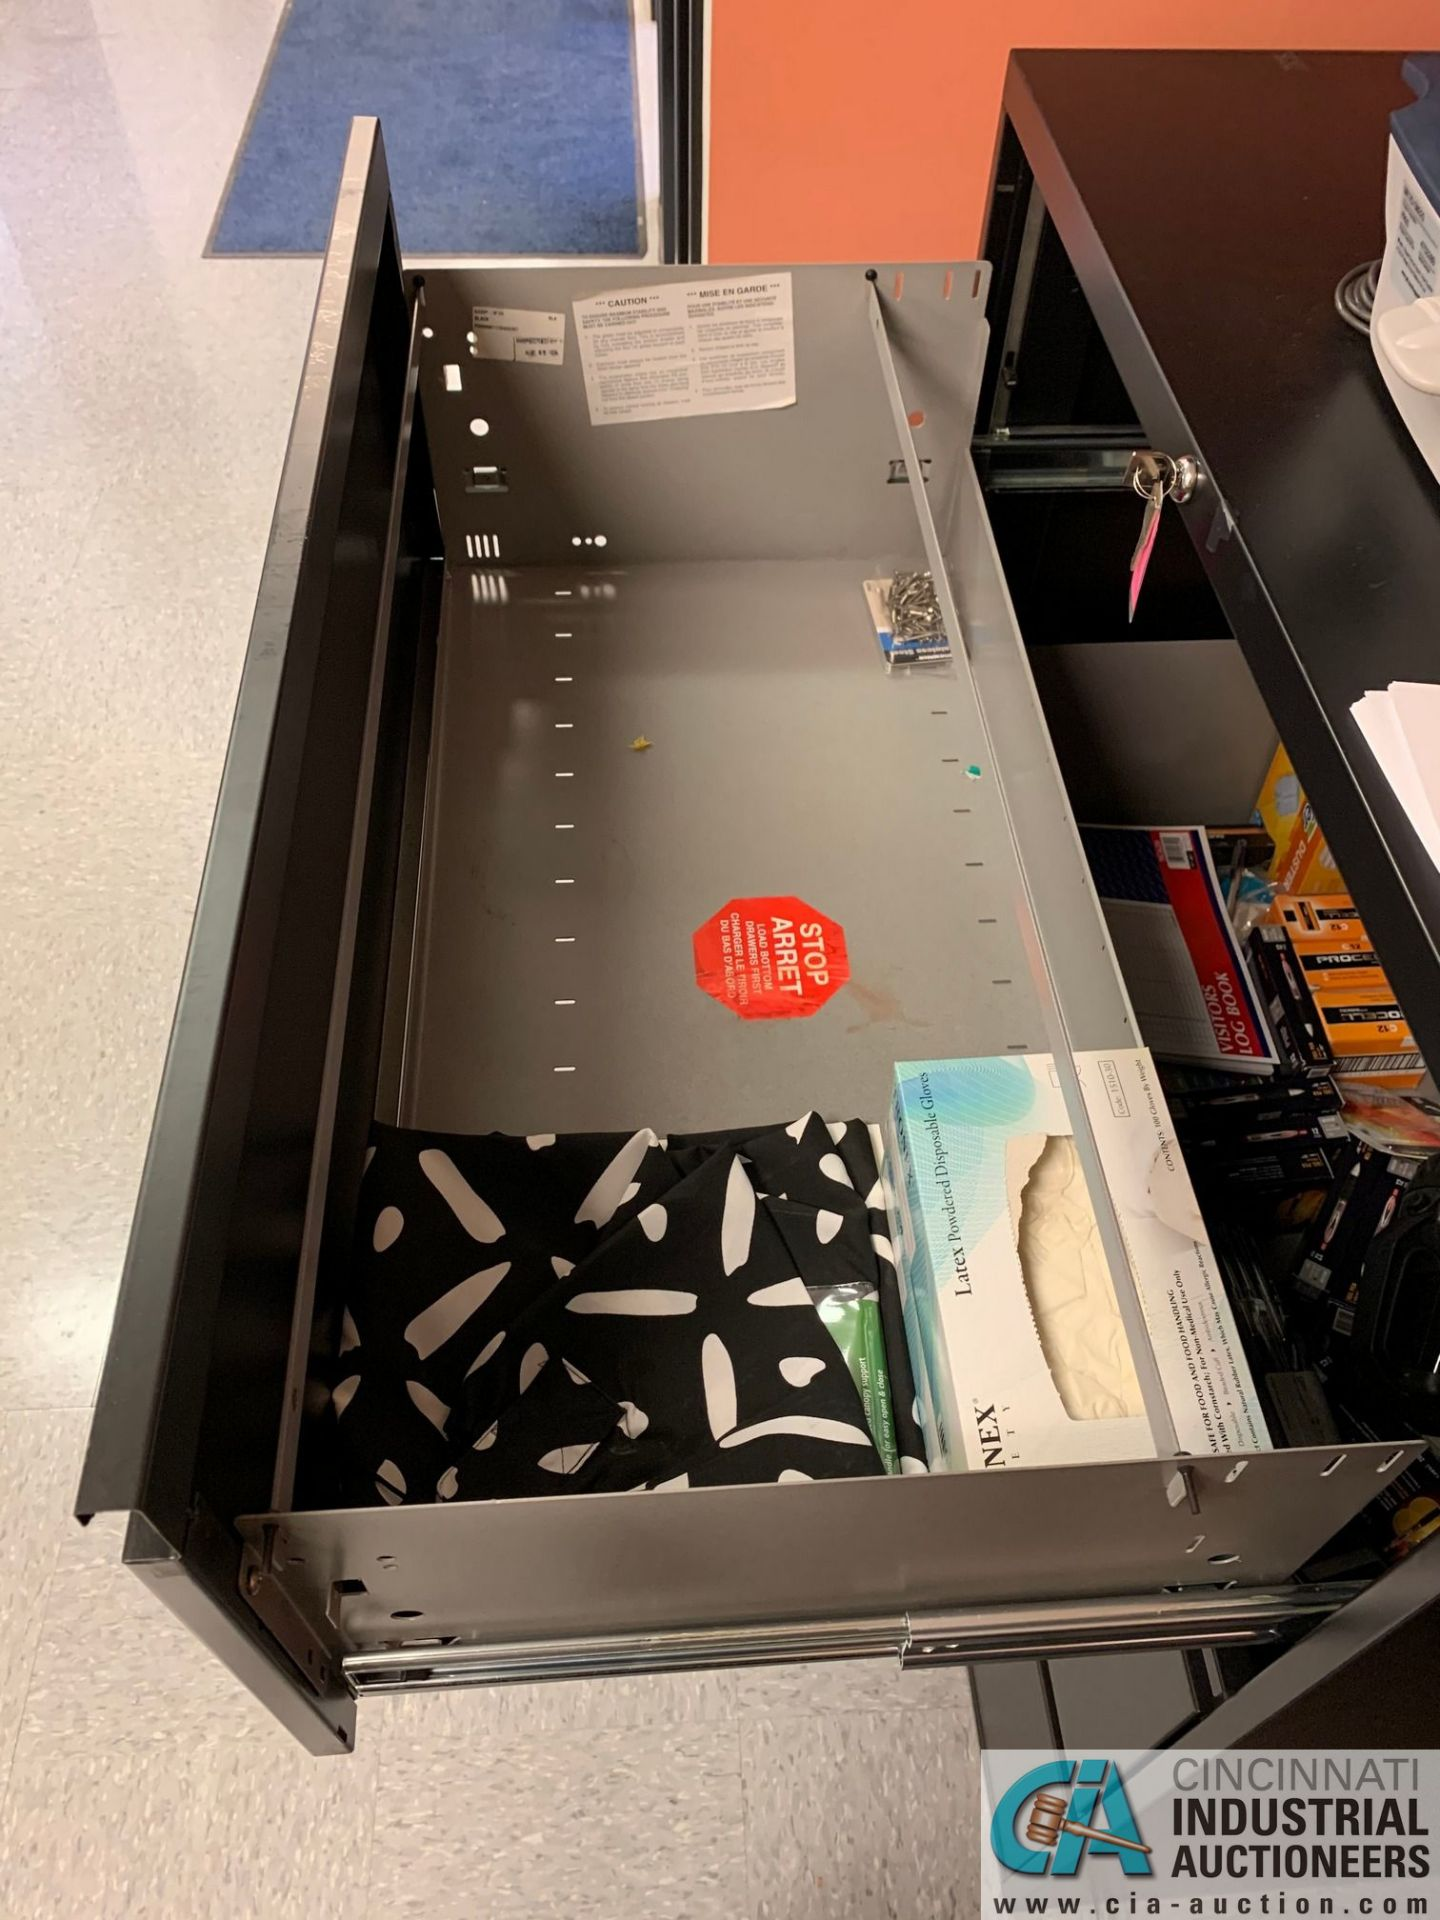 THREE-DRAWER LATERAL FILE CABINET (NO CONTENTS) (5400 OAKLEY INDUSTRIAL BLVD., FAIRBURN, GA 30213) - Image 3 of 3